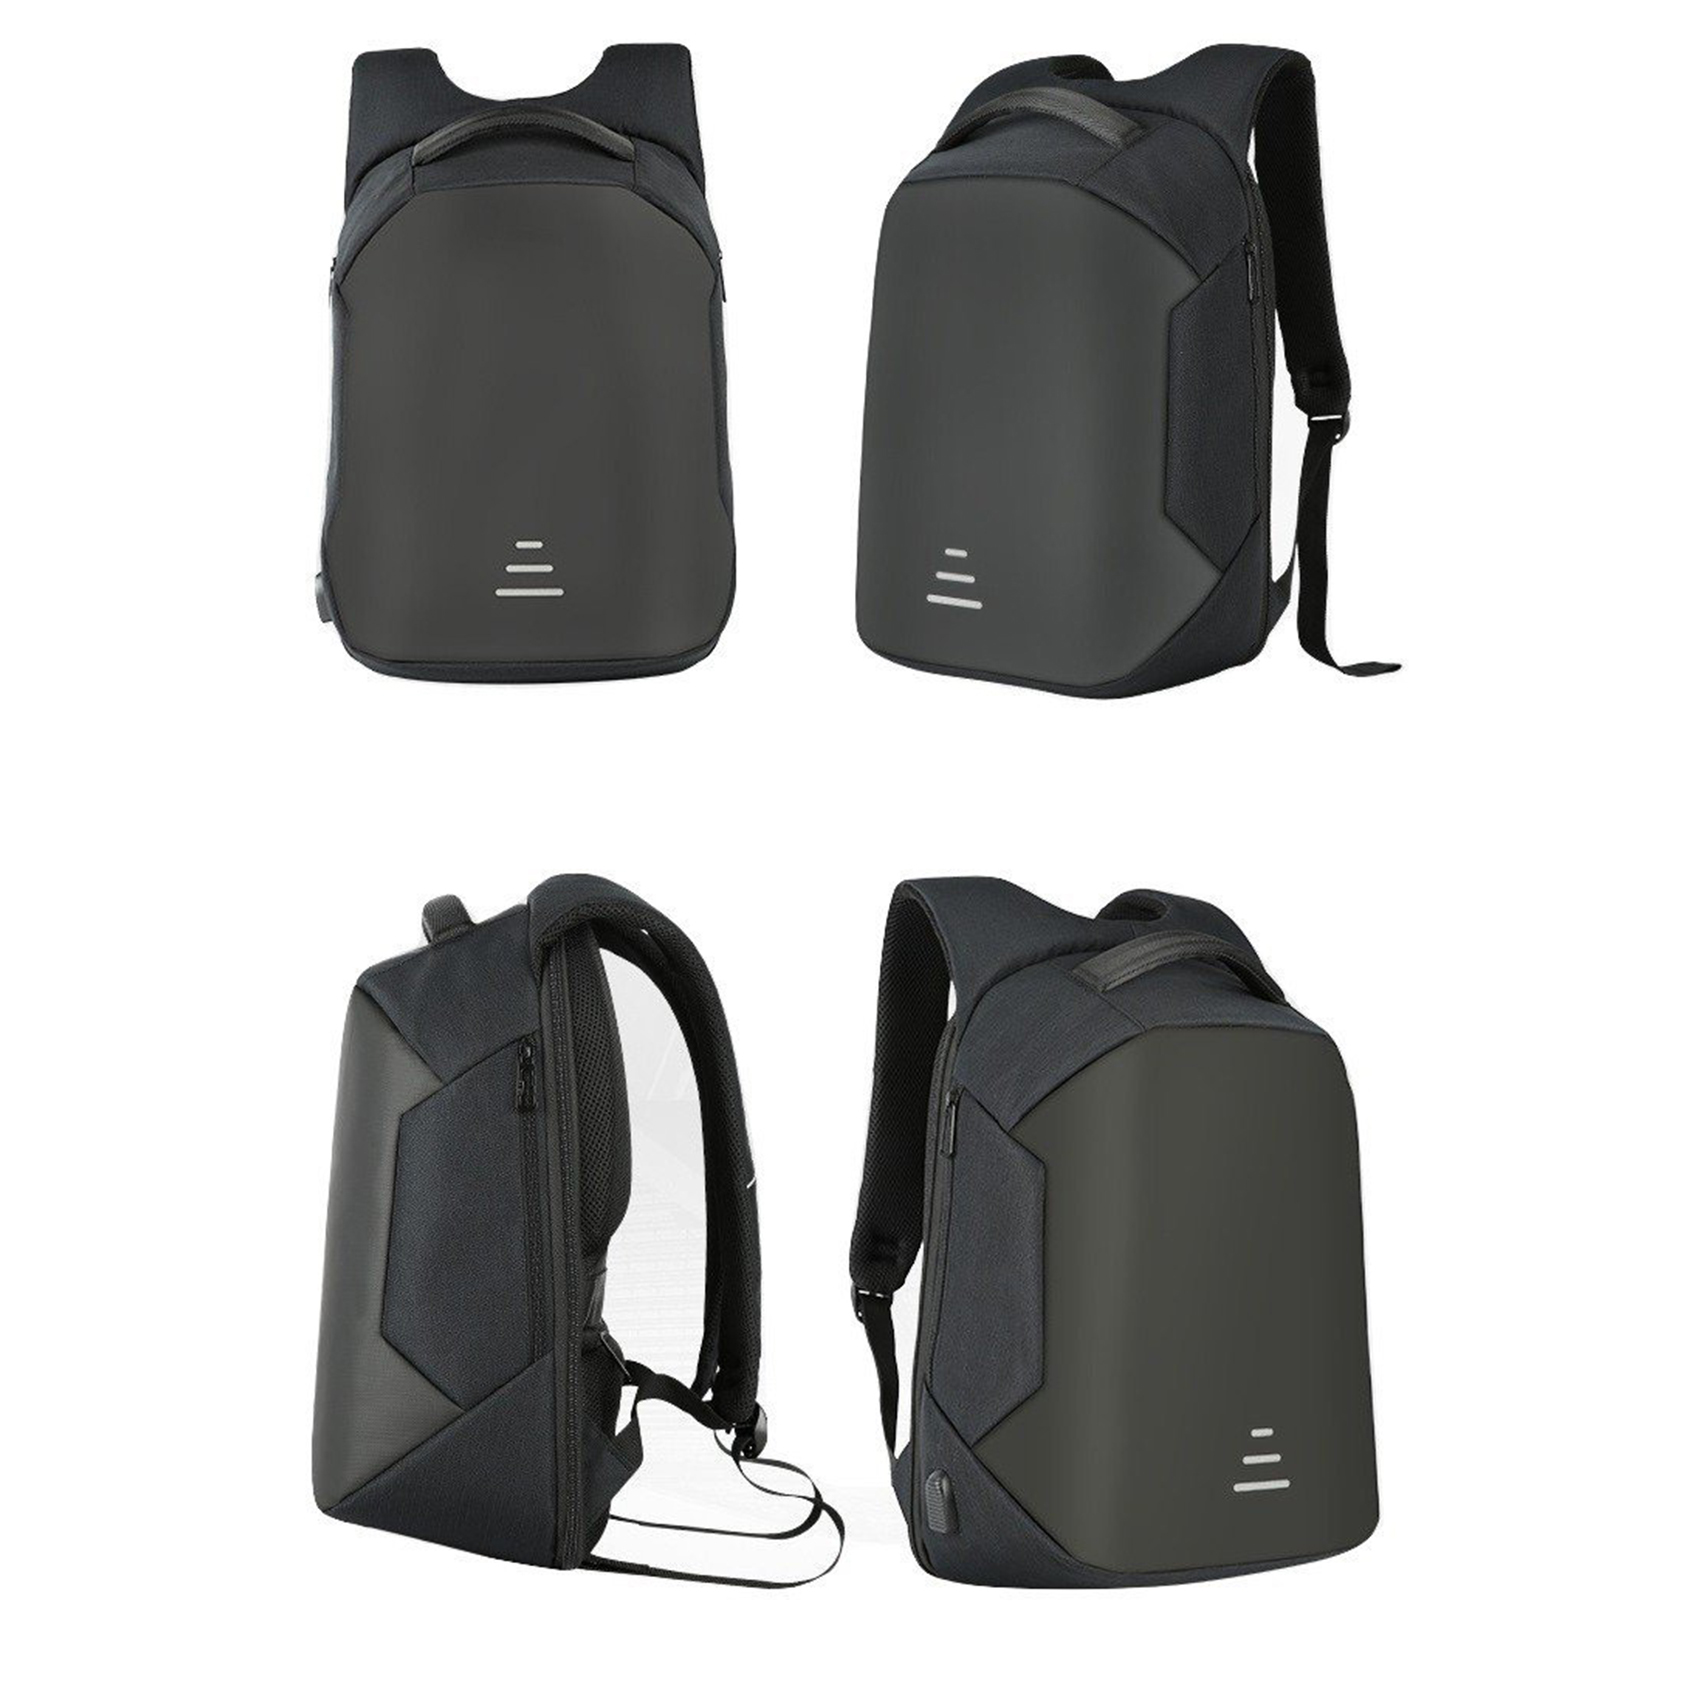 Sweet Tourist Anti Theft Backpack With Powerbank USB Output - Black